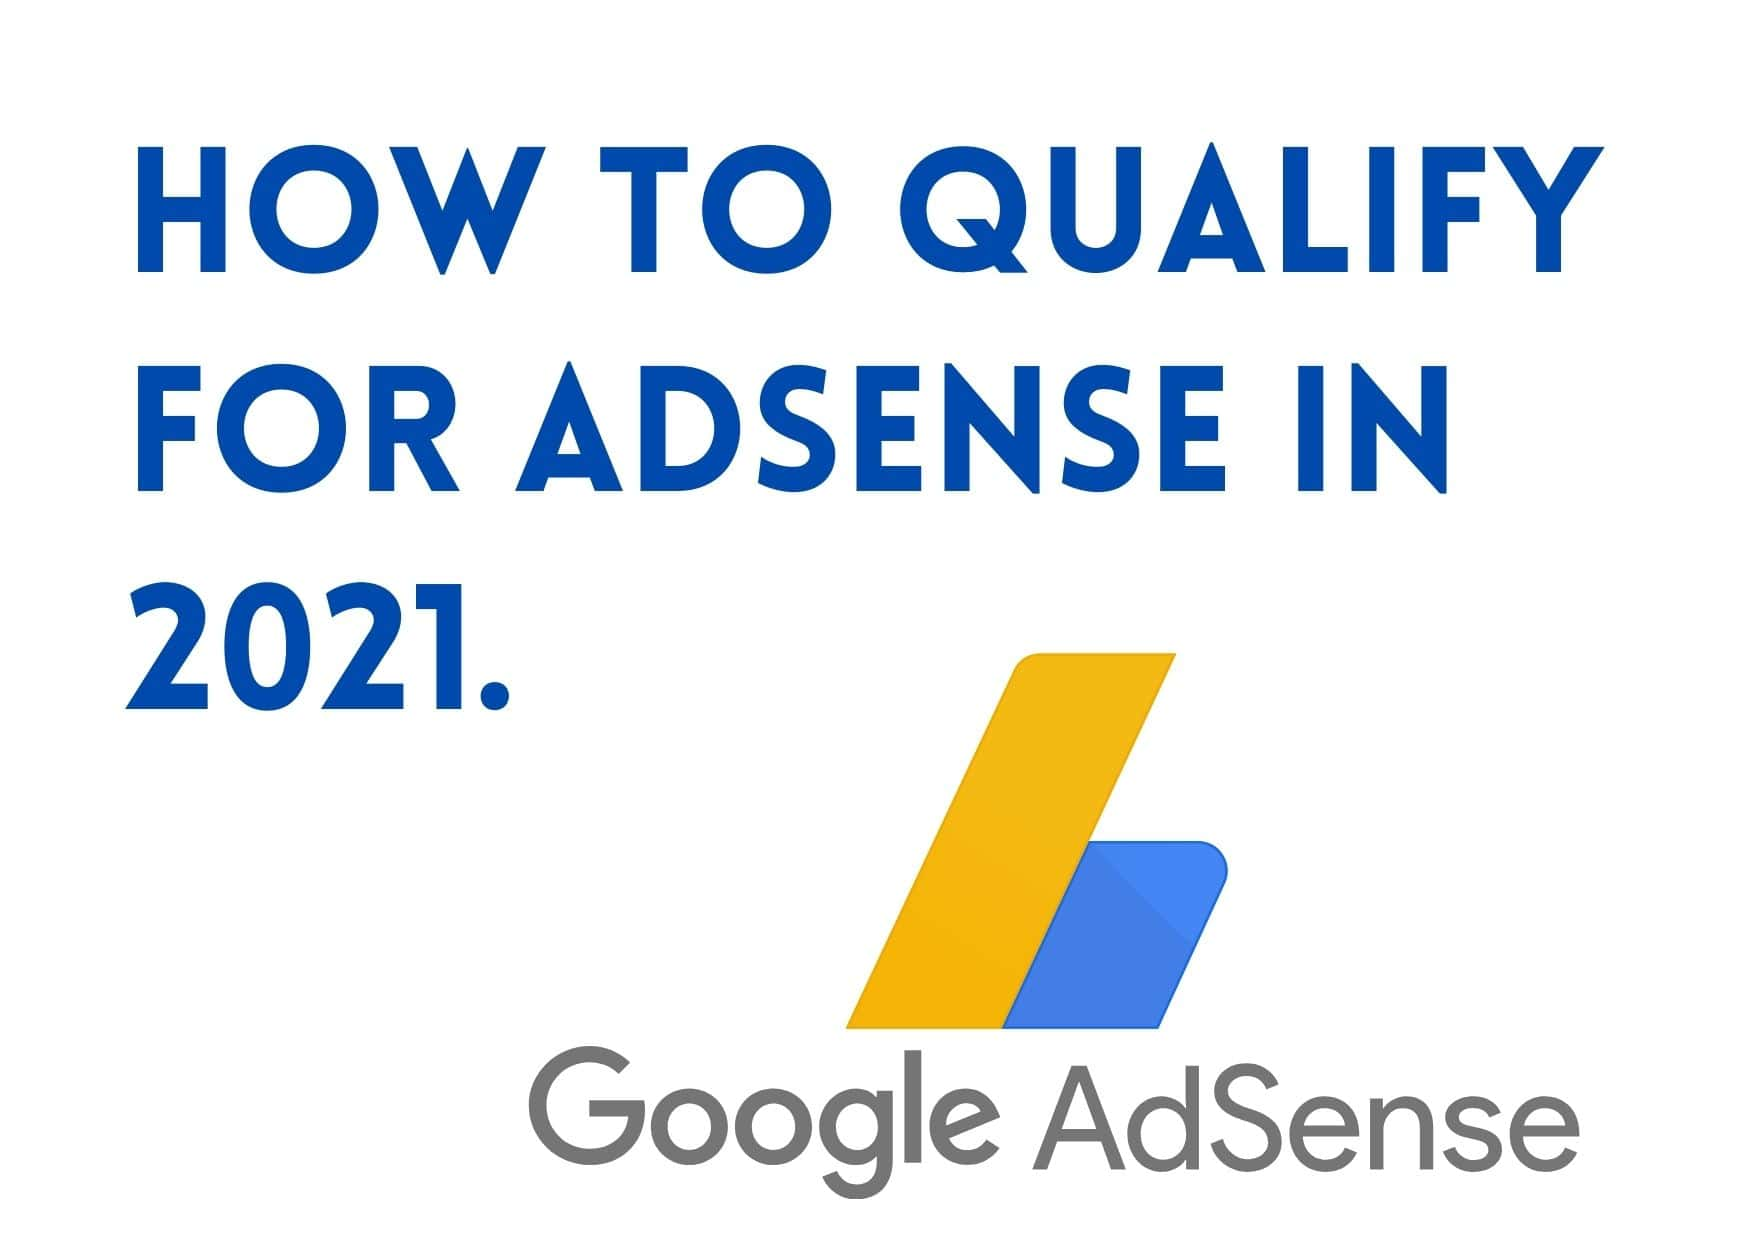 How to qualify for Adsense in 2021